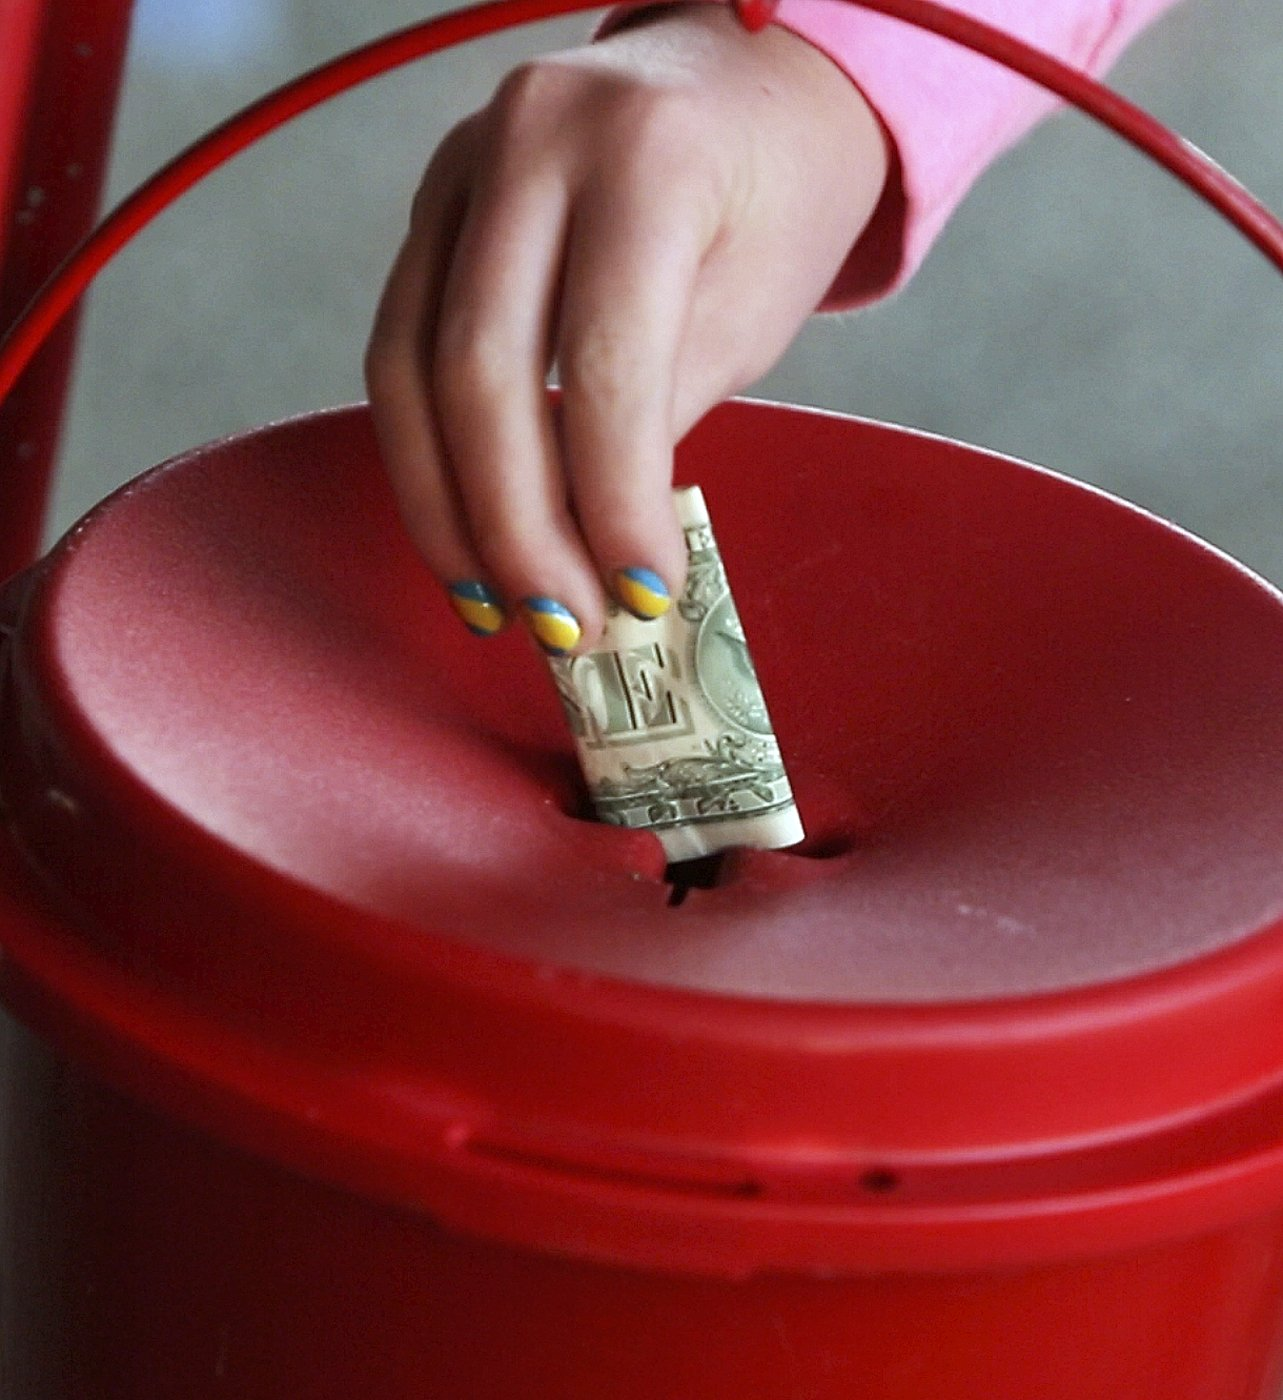 A donation is made to the Salvation Army kettle.